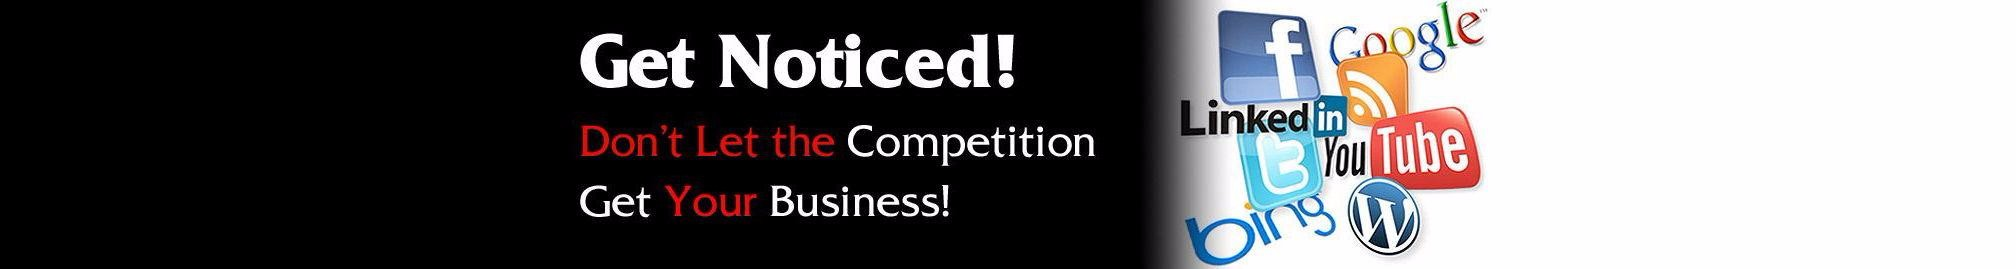 Get Noticed, Don't Let the Competition Get Your Business